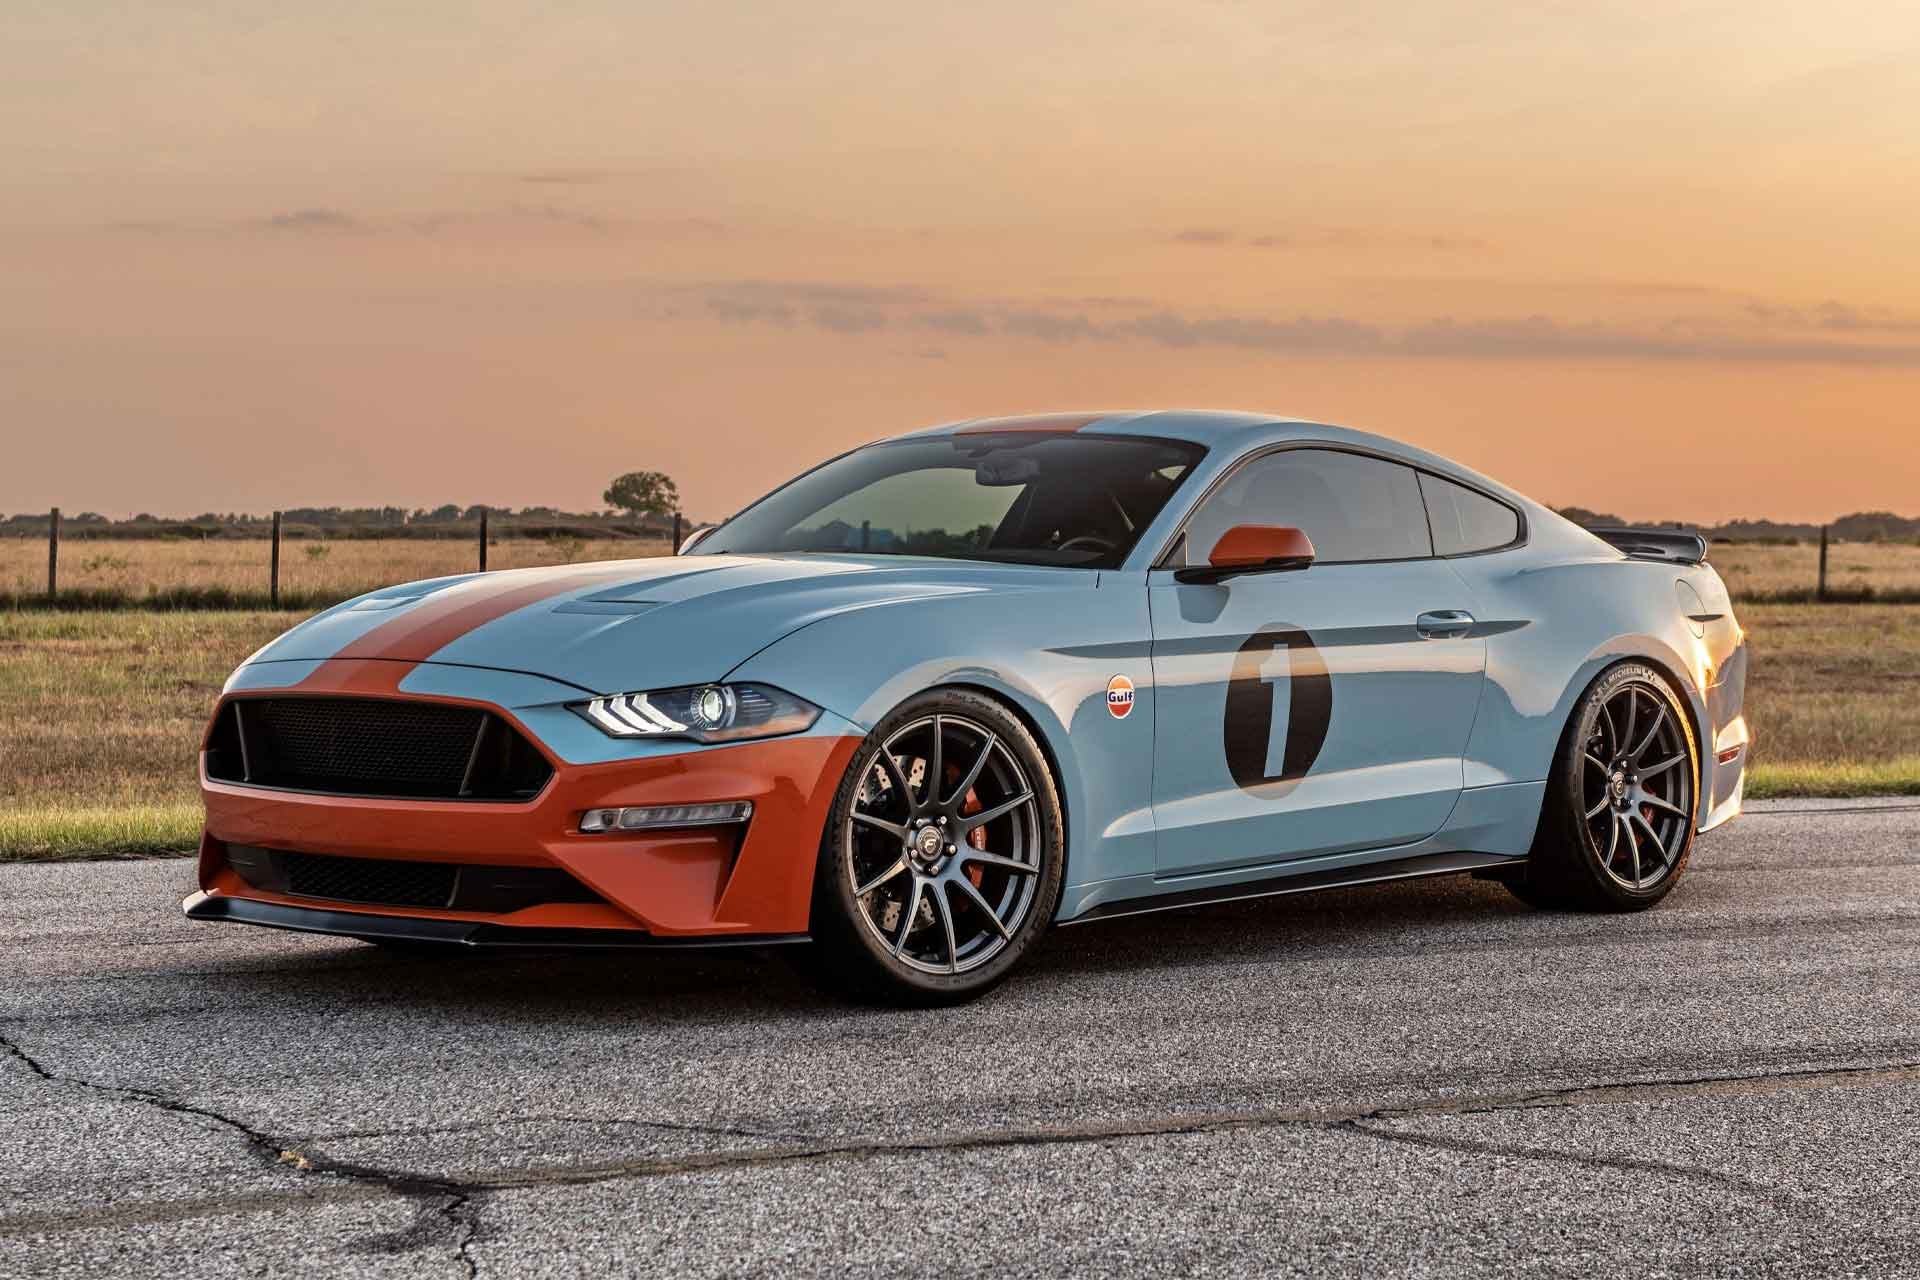 2019 Gulf Heritage Edition Mustang Coupe